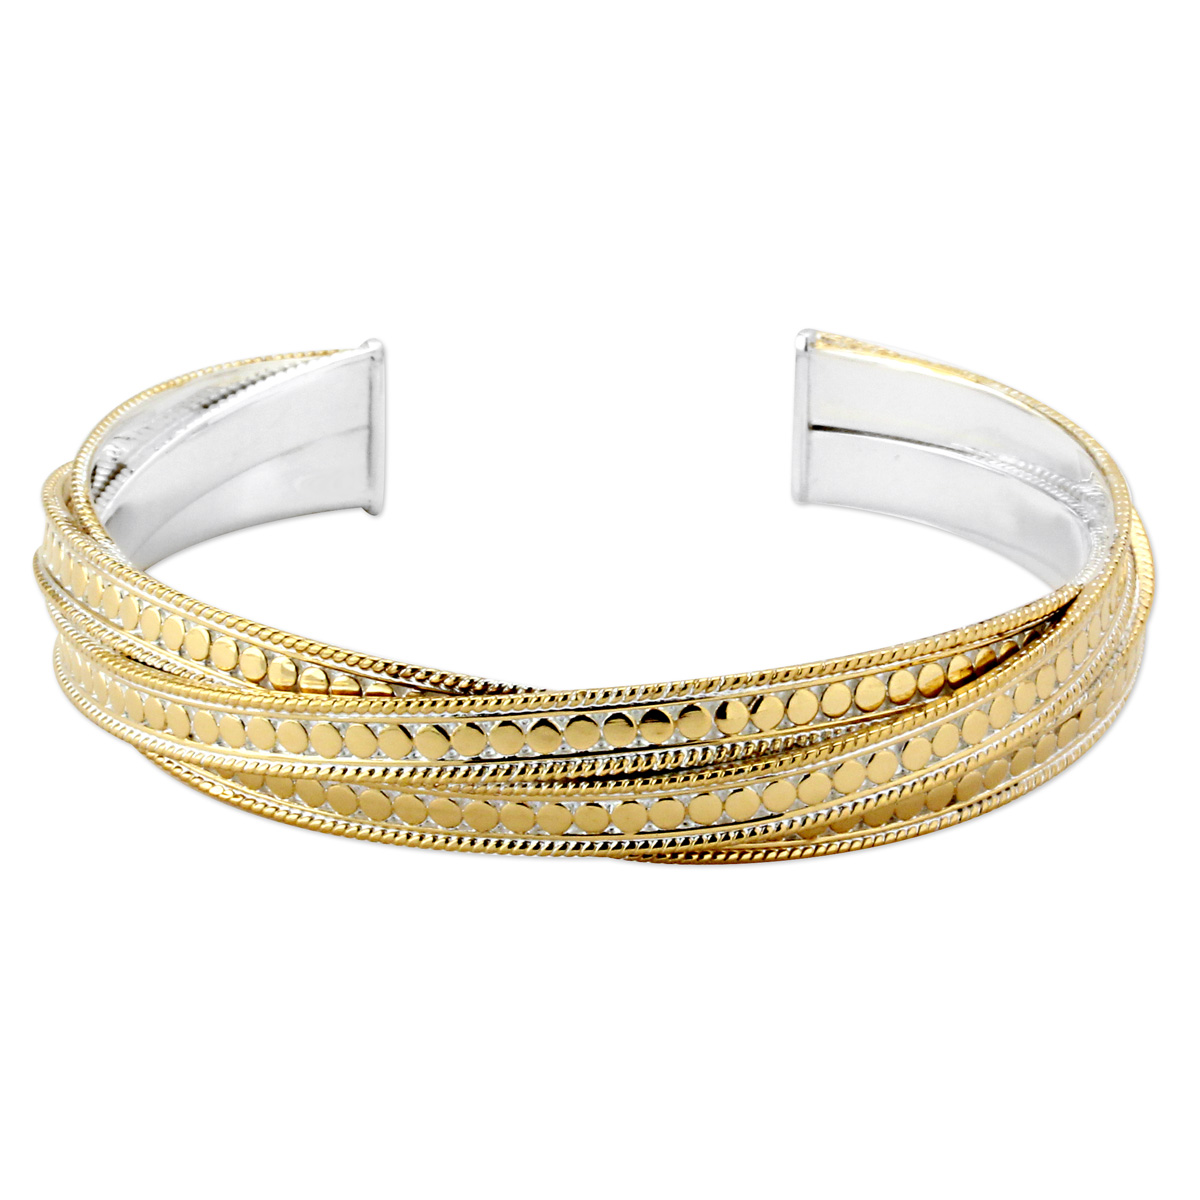 345286-Anna Beck Gold Wire Rimmed Bangle